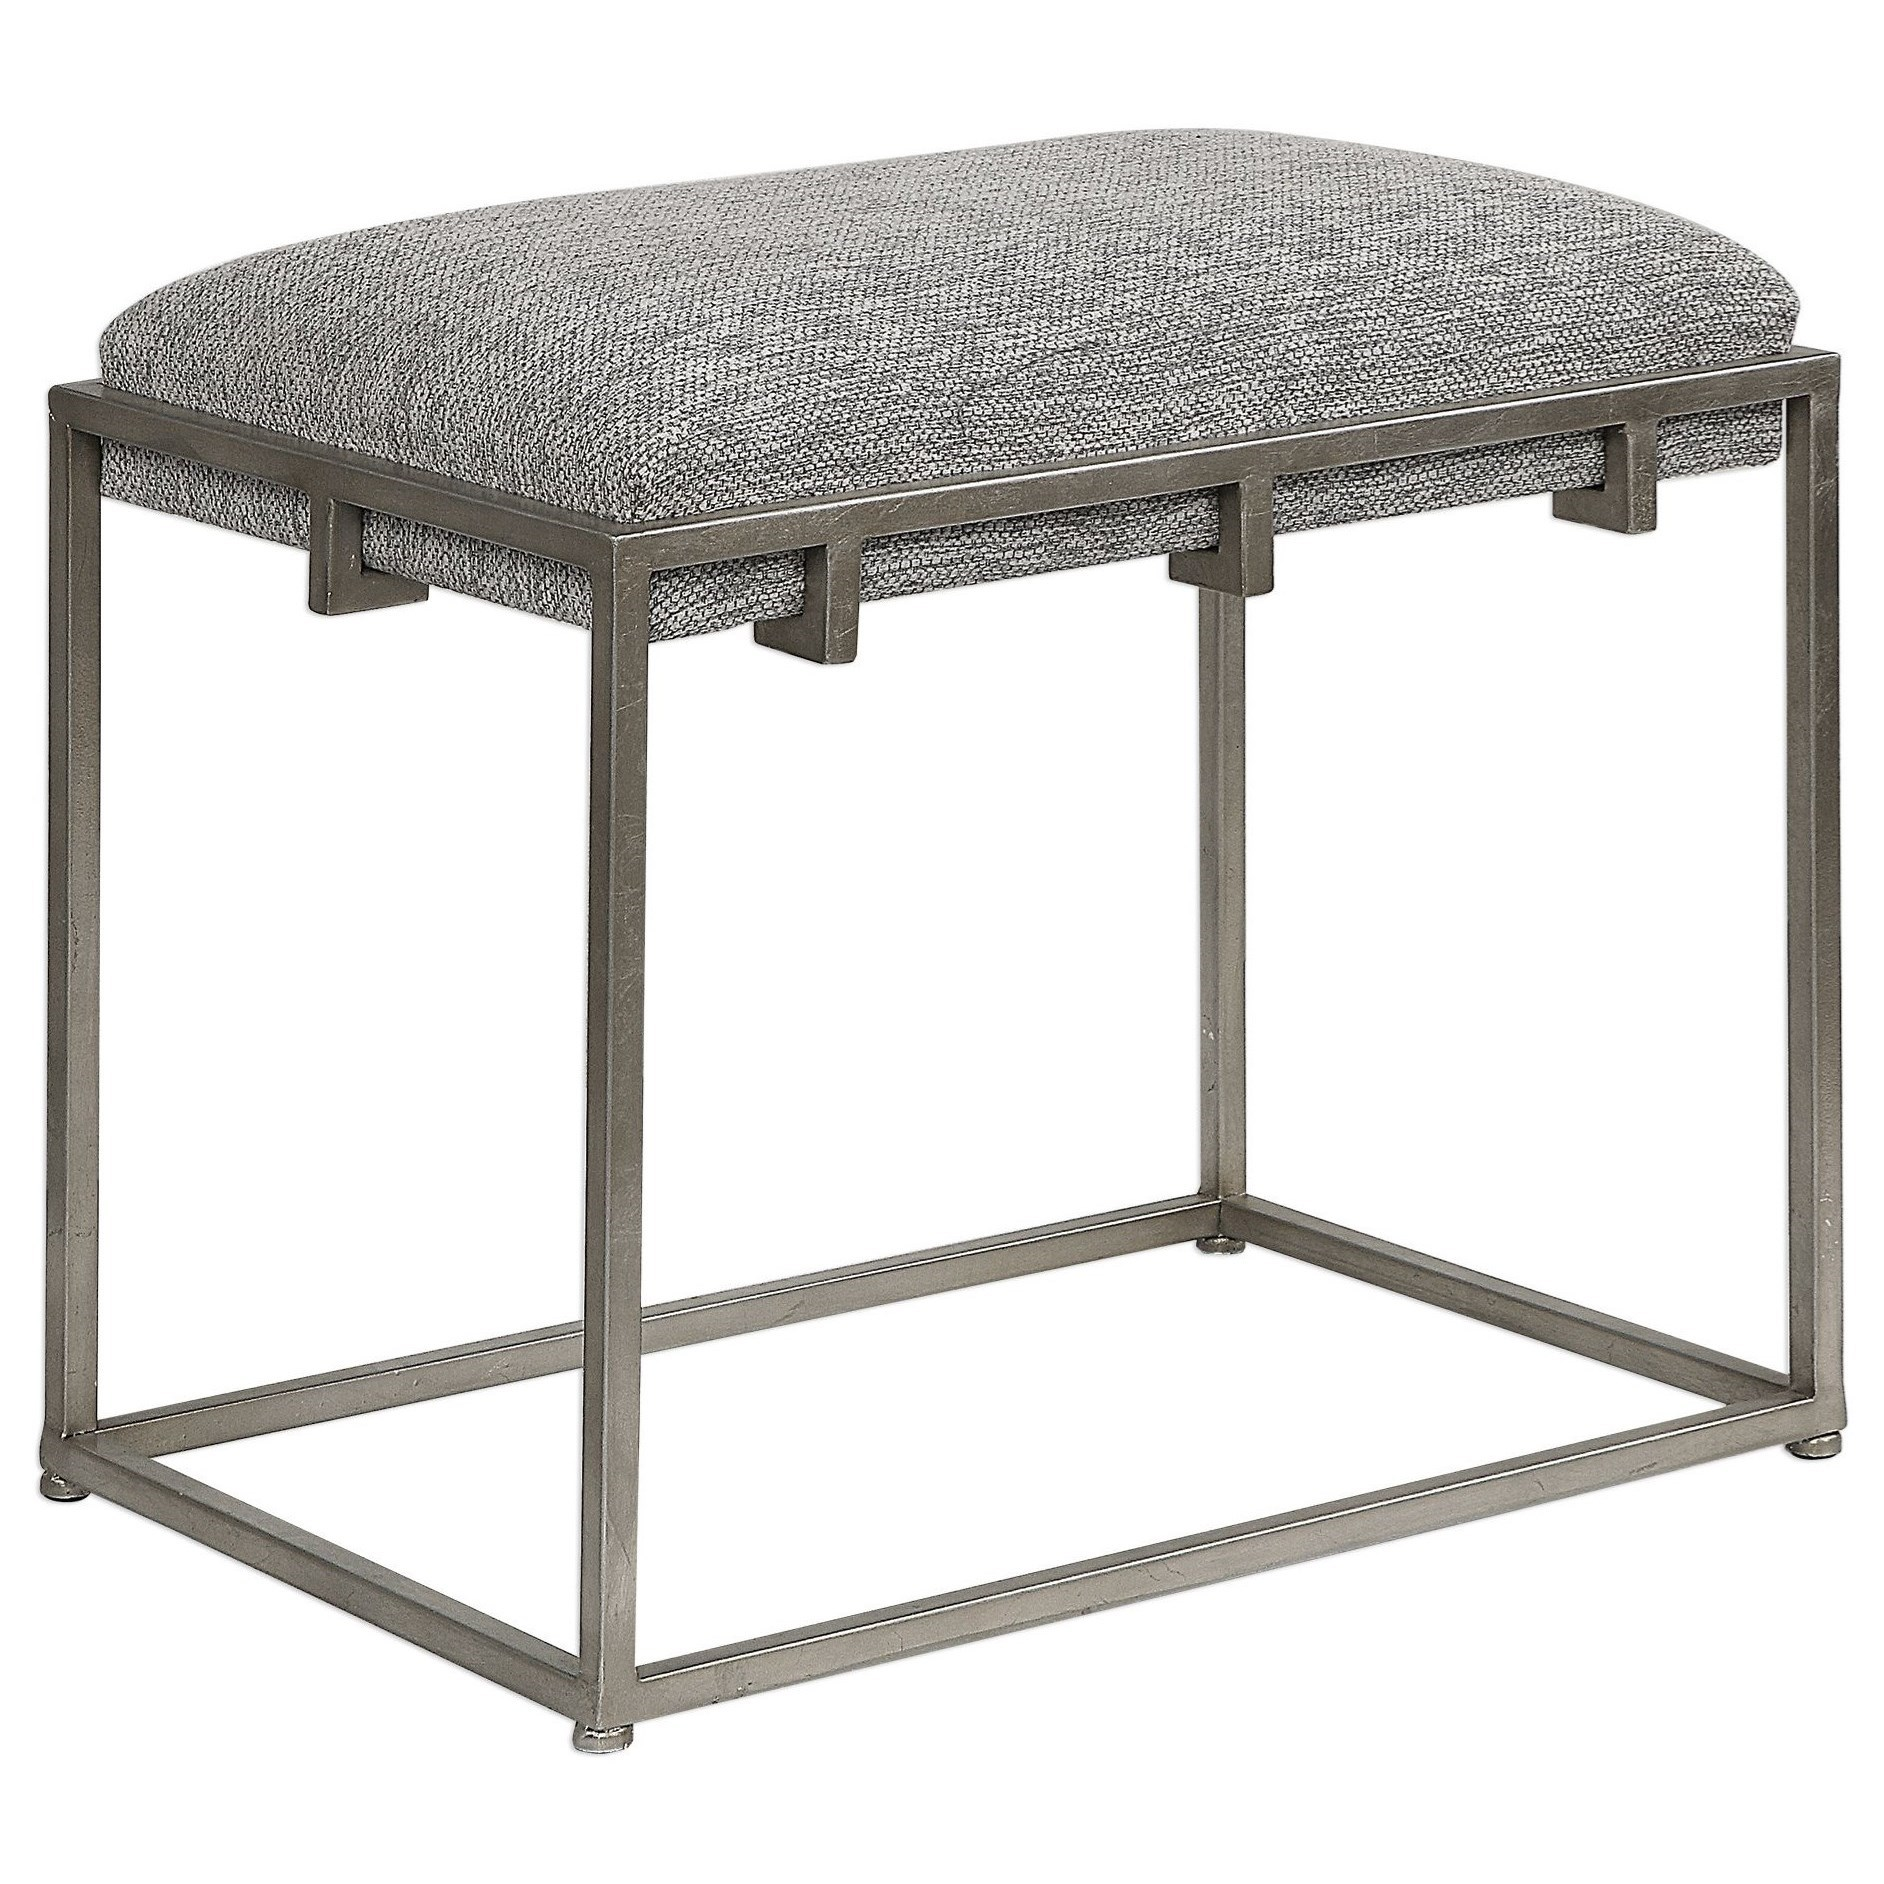 Accent Furniture - Benches Edie Silver Small Bench by Uttermost at Upper Room Home Furnishings